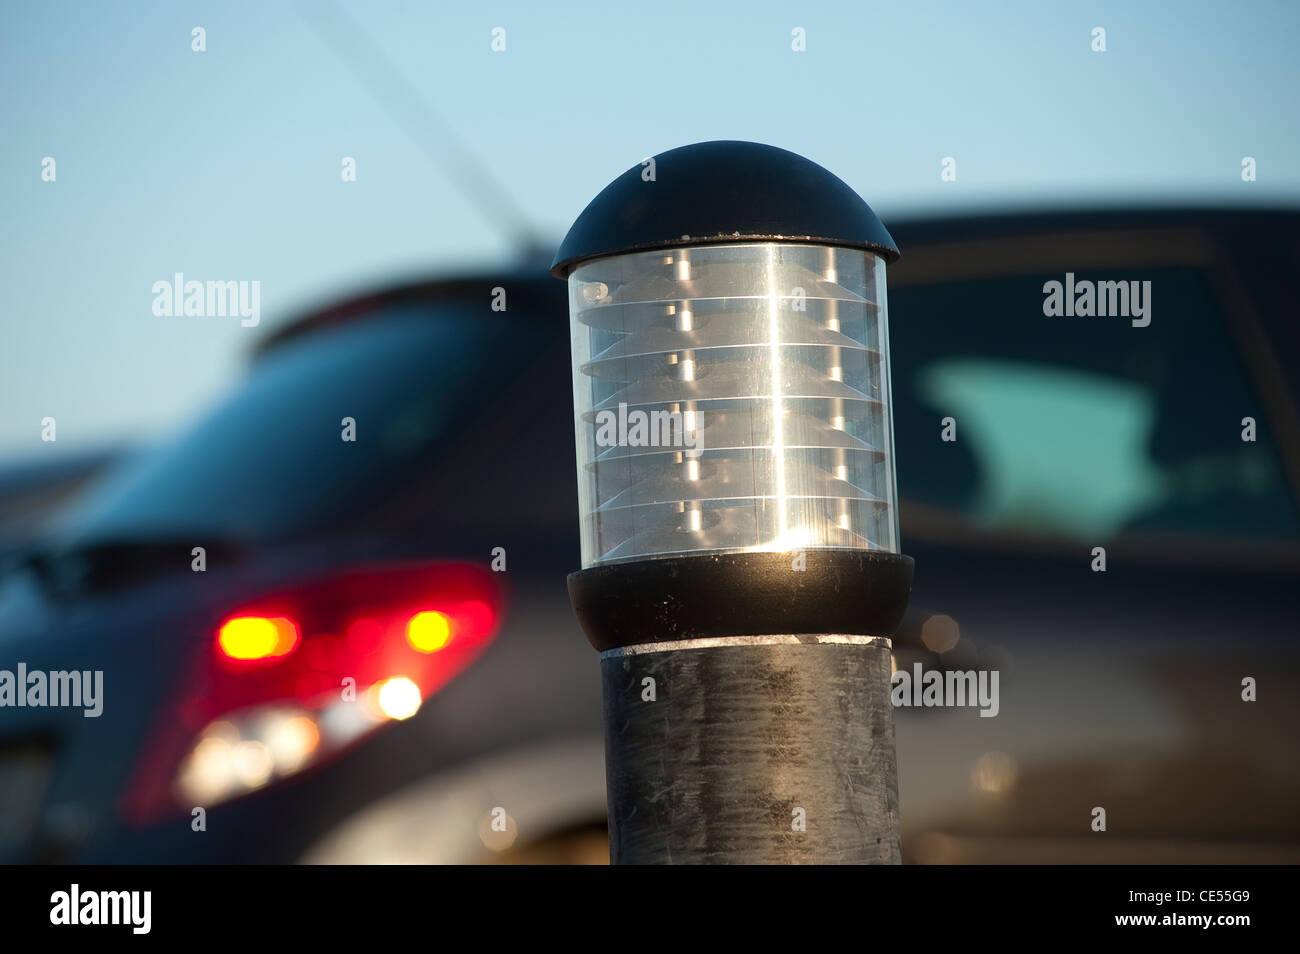 Close up of a lamp in a car park at dusk. - Stock Image